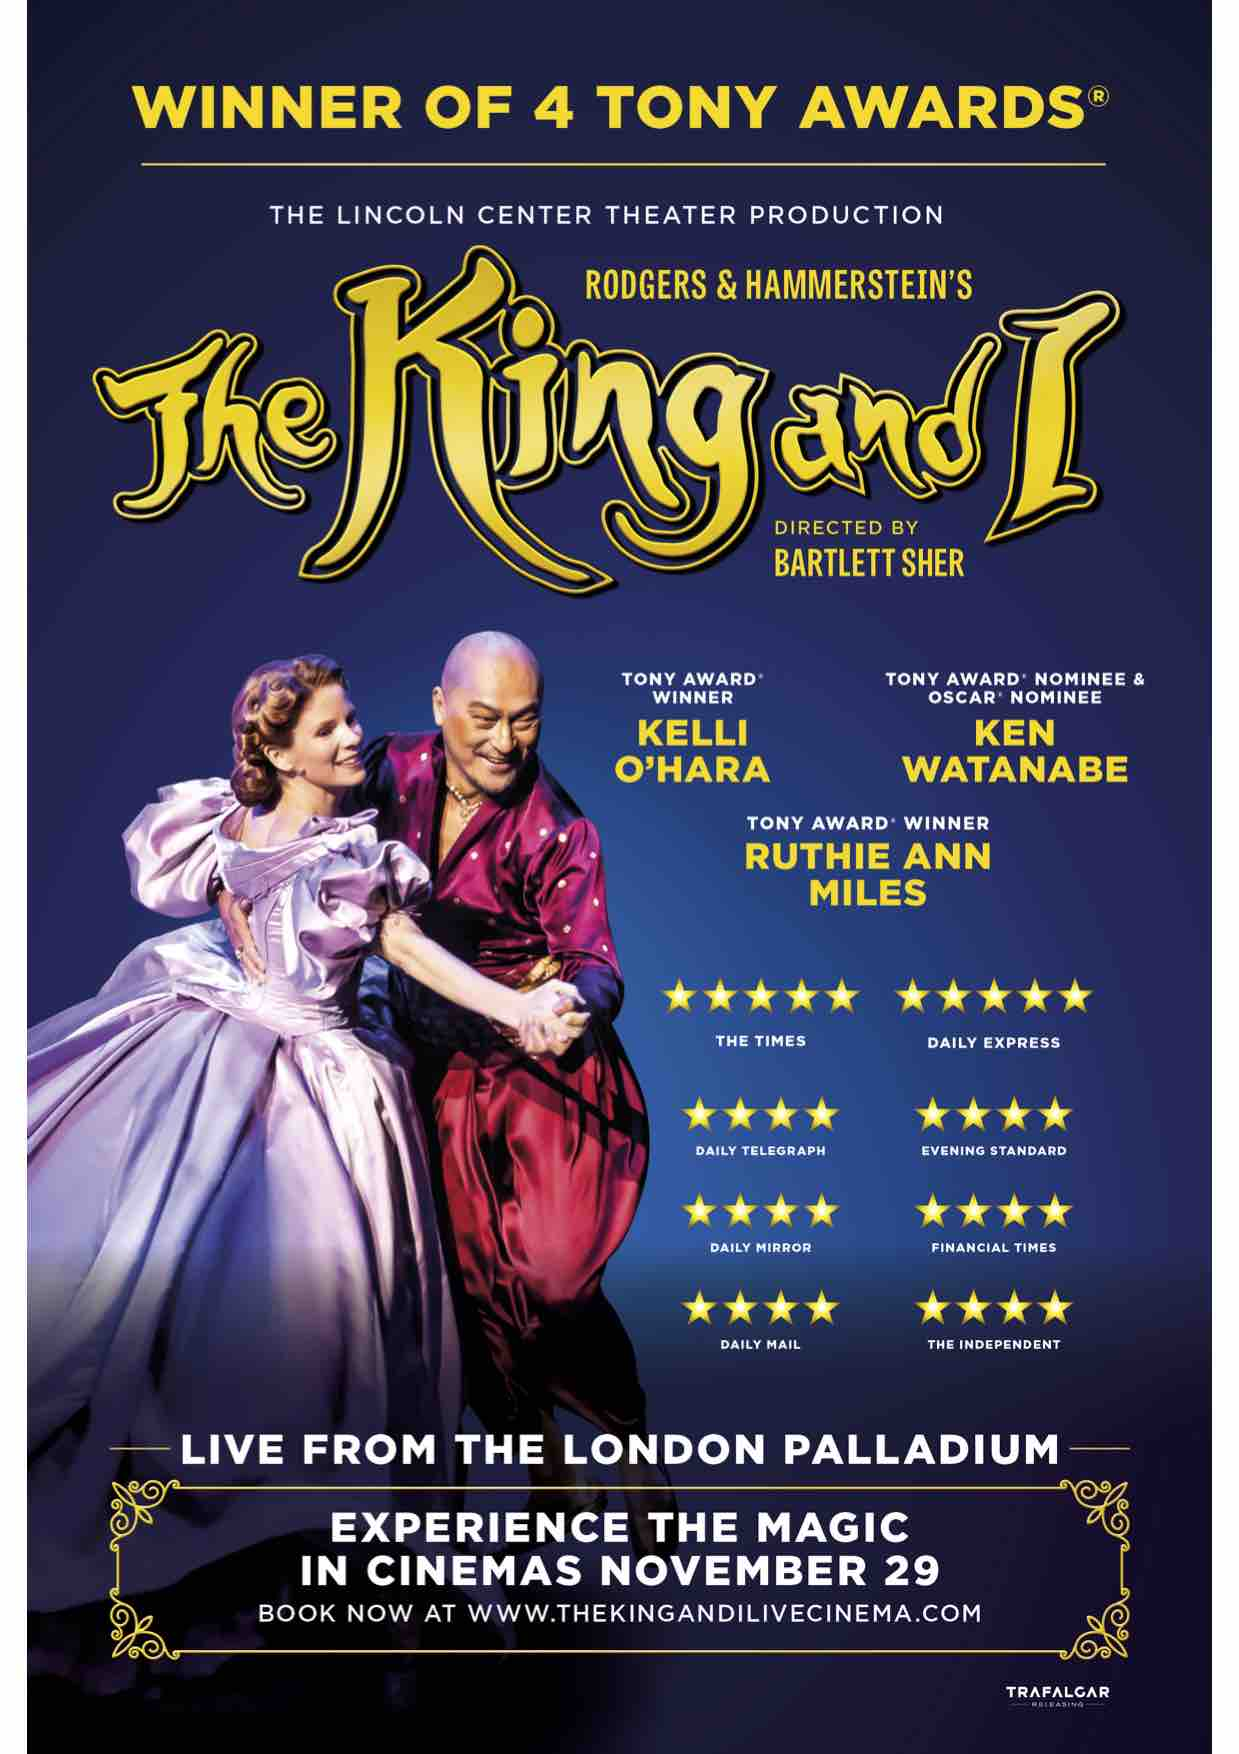 Storbritannien på fötter kl det senaste The King And I From The London Palladium (12A) at Oswestry's ...